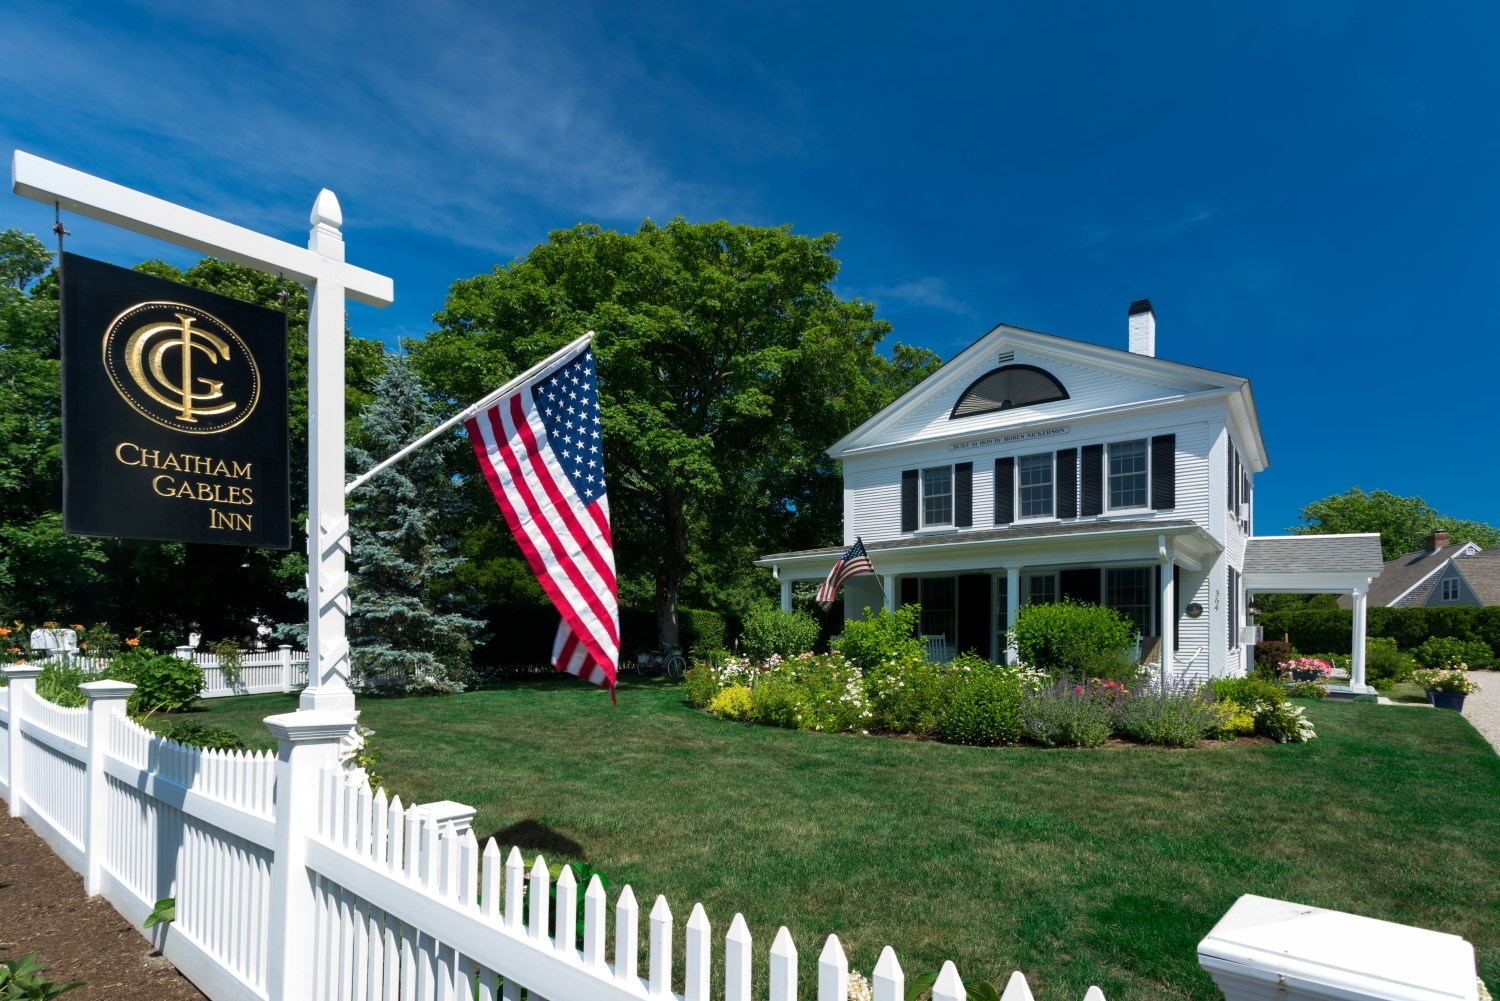 The Ultimate 5-Day Summer Itinerary for Your Cape Cod Getaway